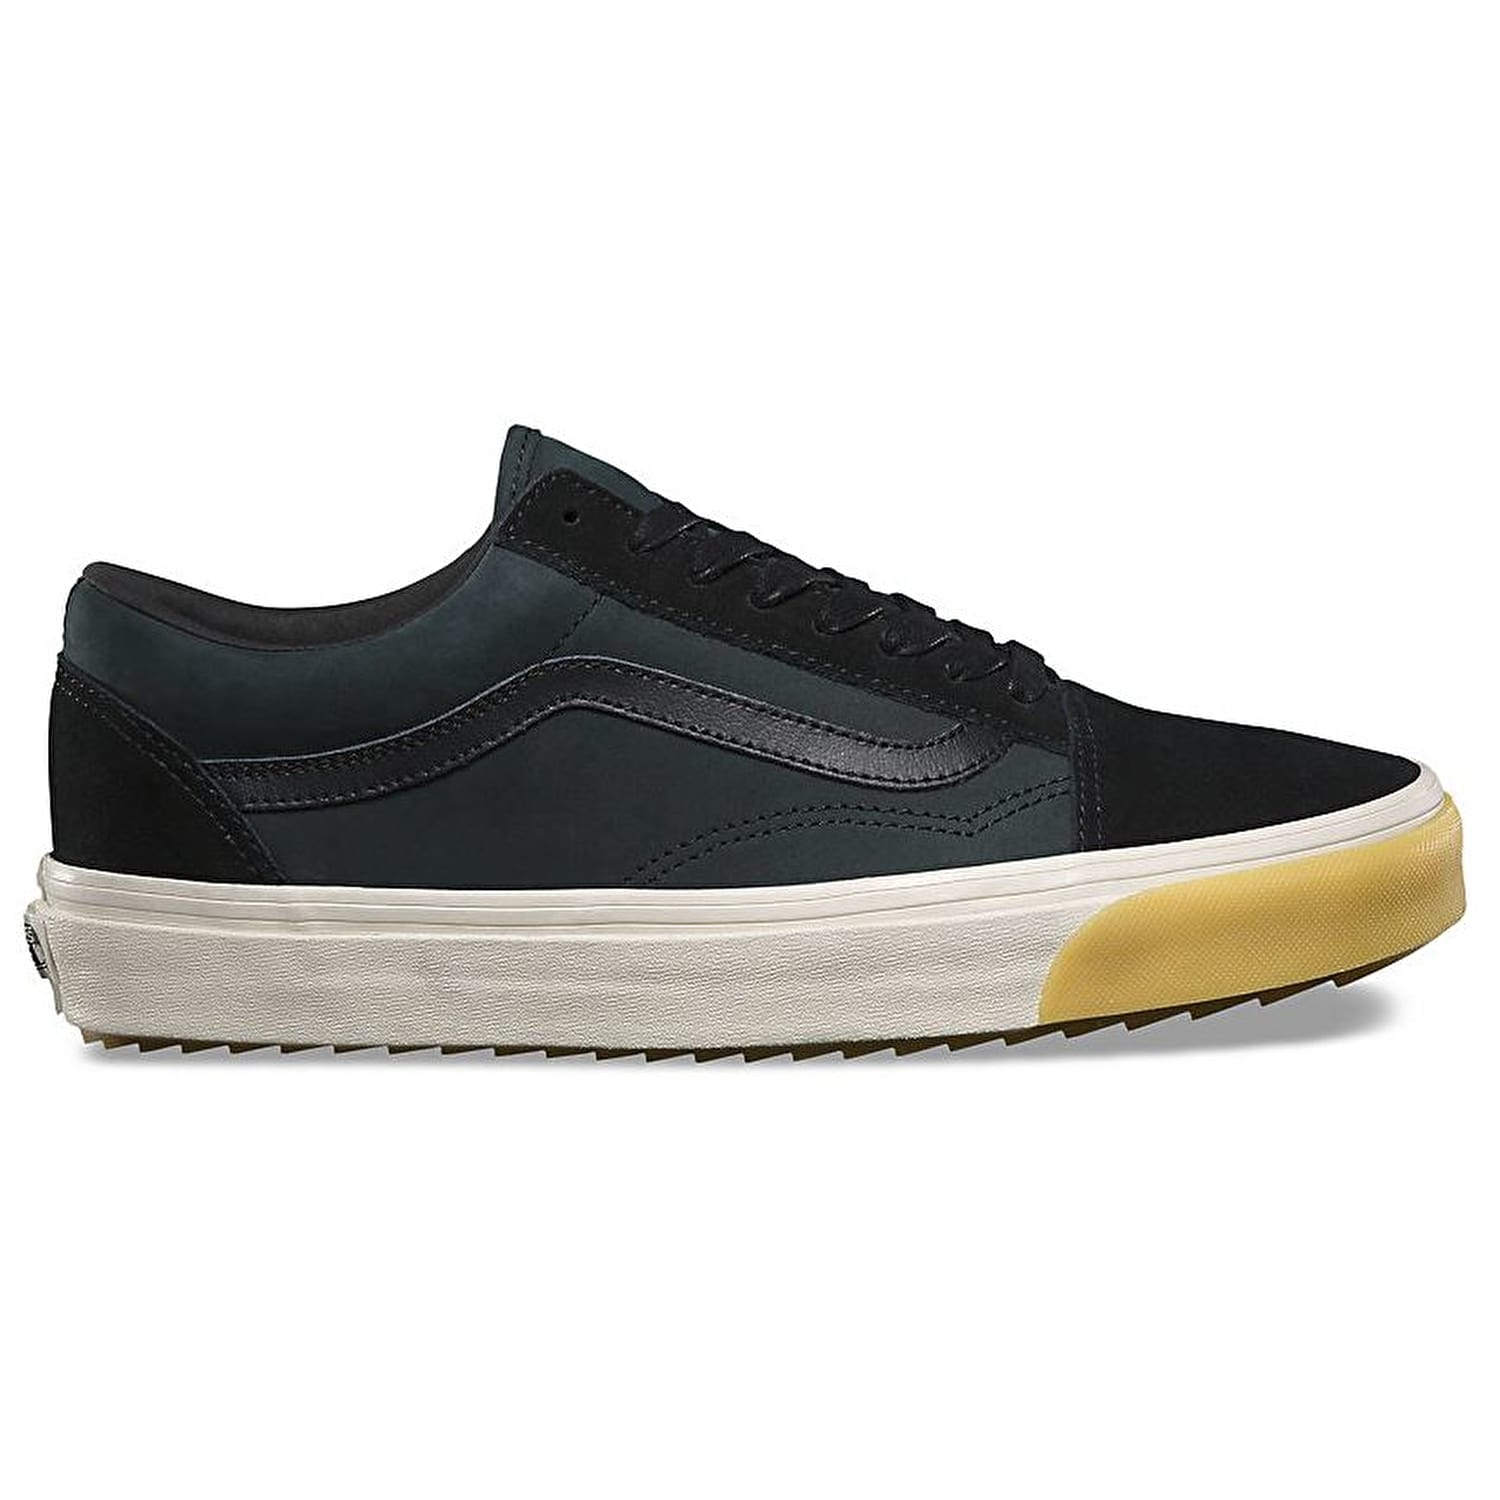 Vans Old Skool Sneaker Scarpe Skate wafflesaw podio Nero Bianco -  mainstreetblytheville.org afb3d3e139d